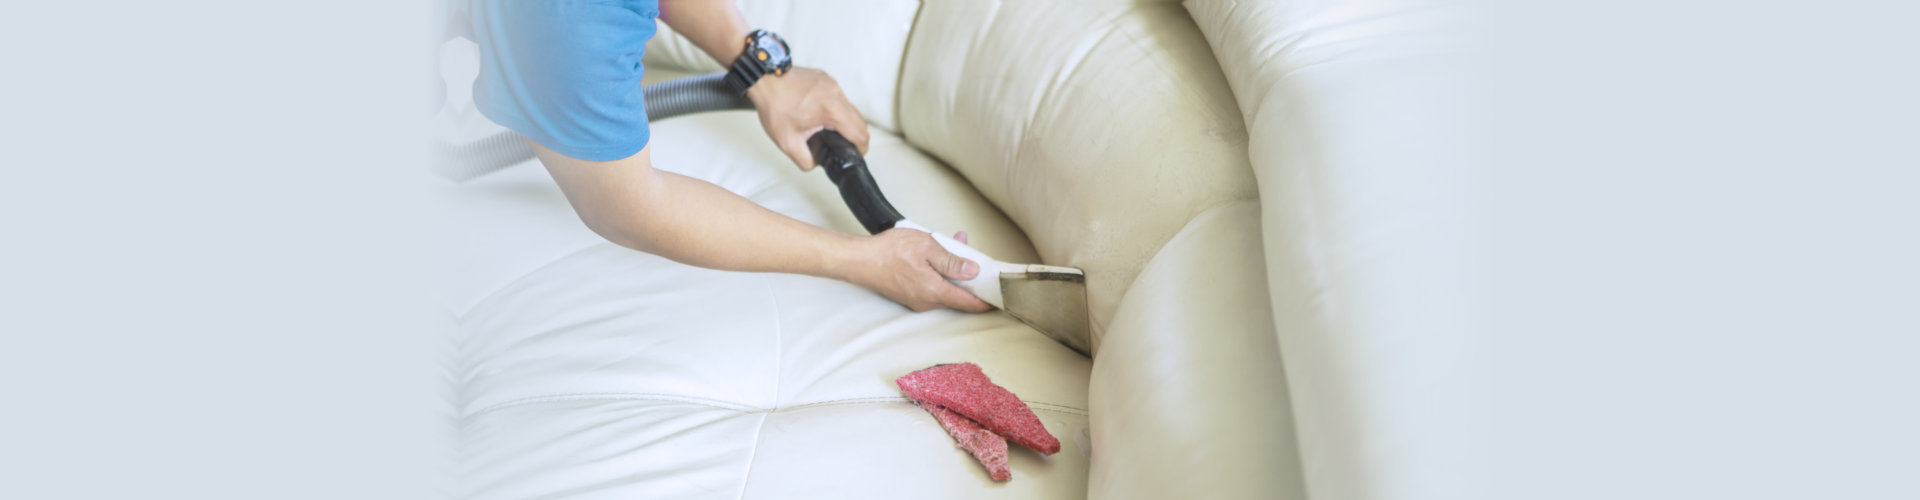 Housekeeper cleans couch with a vacuum cleaner.